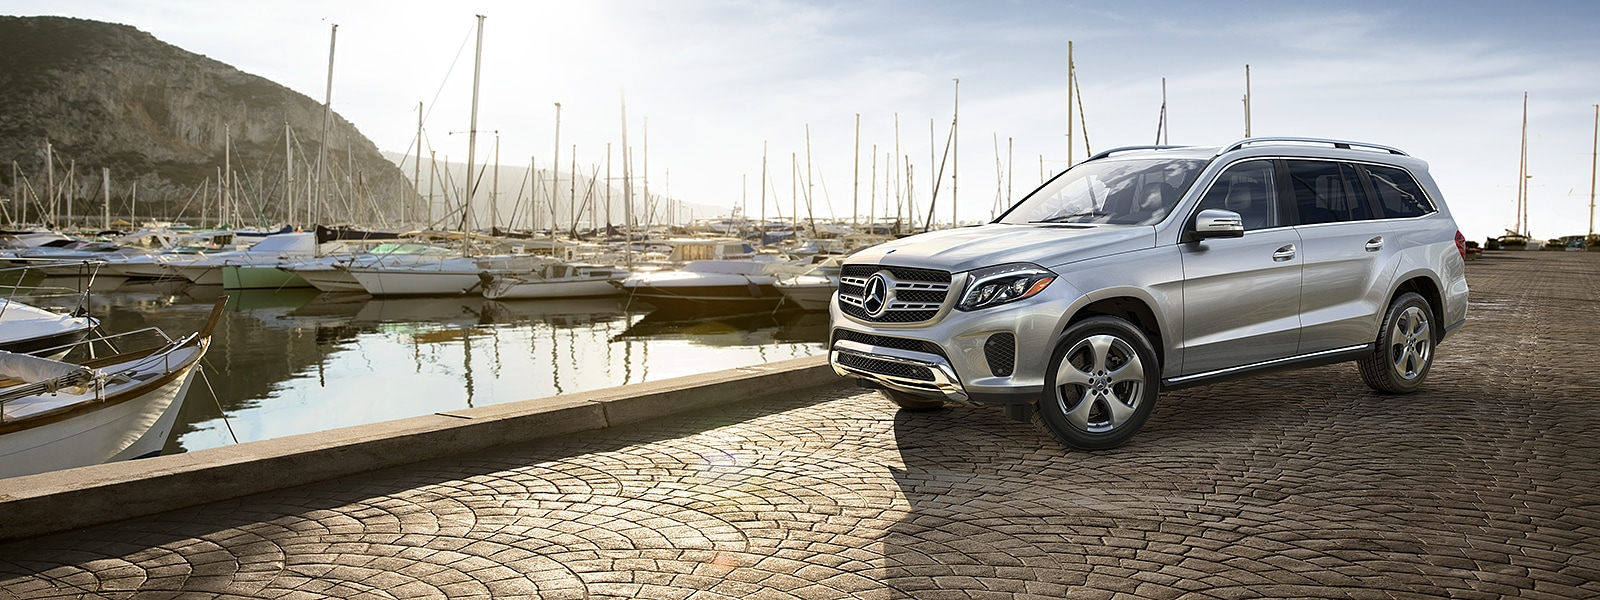 Mercedes-Benz of Ann Arbor | New and Used Mercedes-Benz Cars